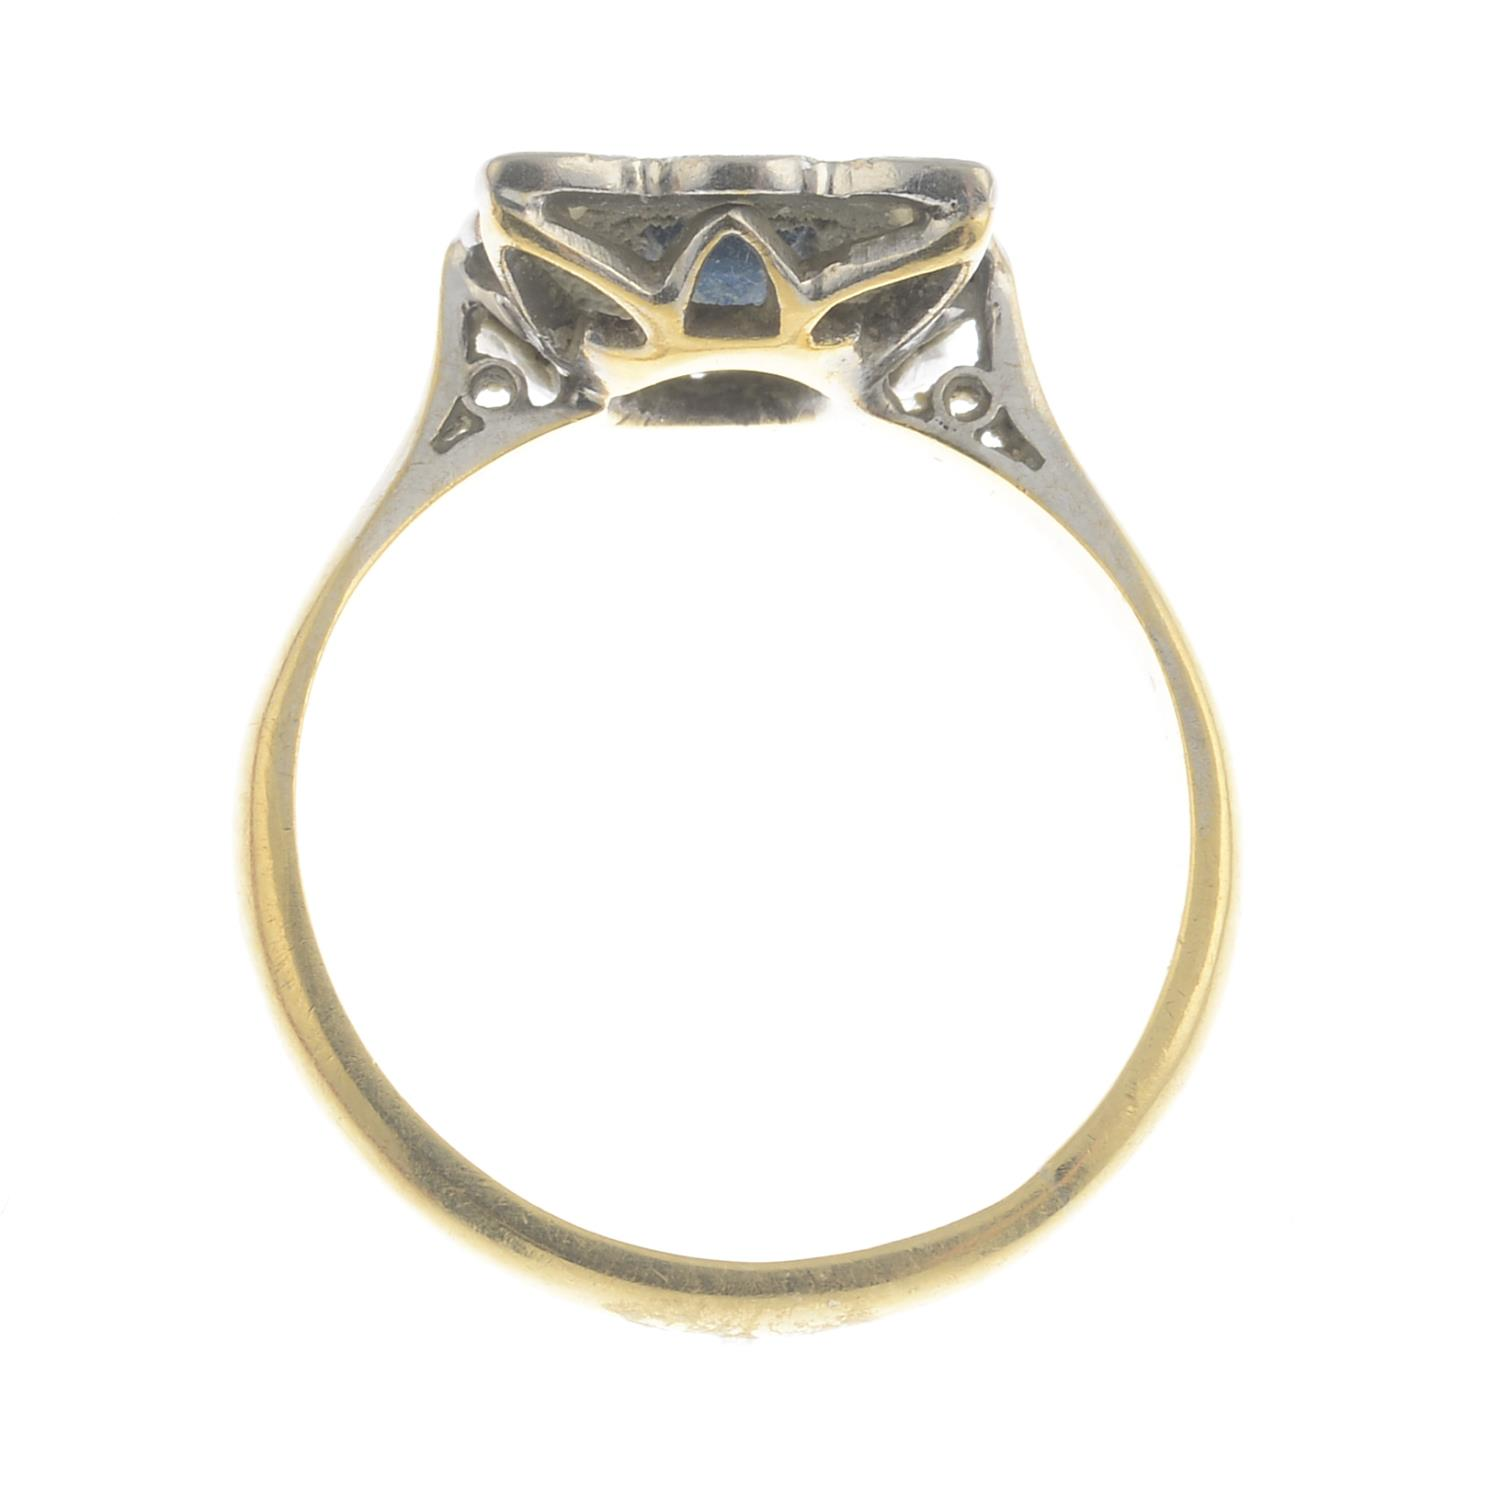 Lot 18 - A mid 20th century 18ct gold and platinum, sapphire and diamond dress ring.